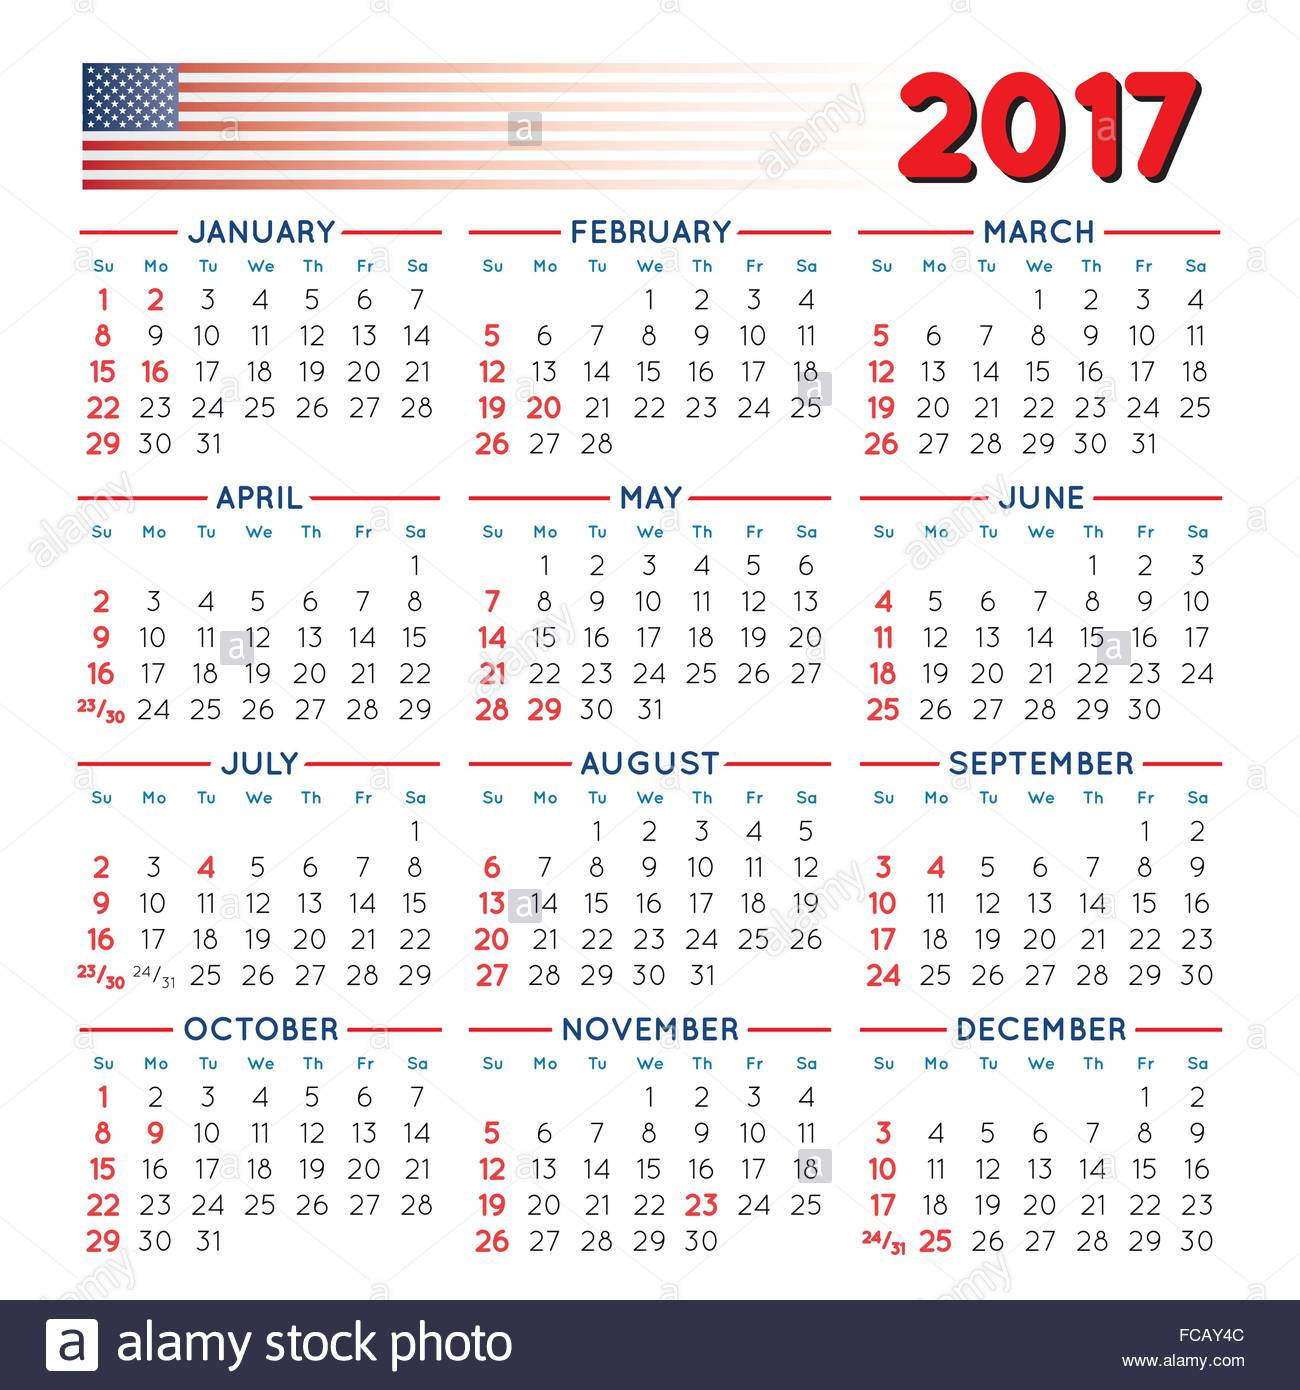 Calendar For 2017 Year Calendar Event Personal Pictures to pin on ...